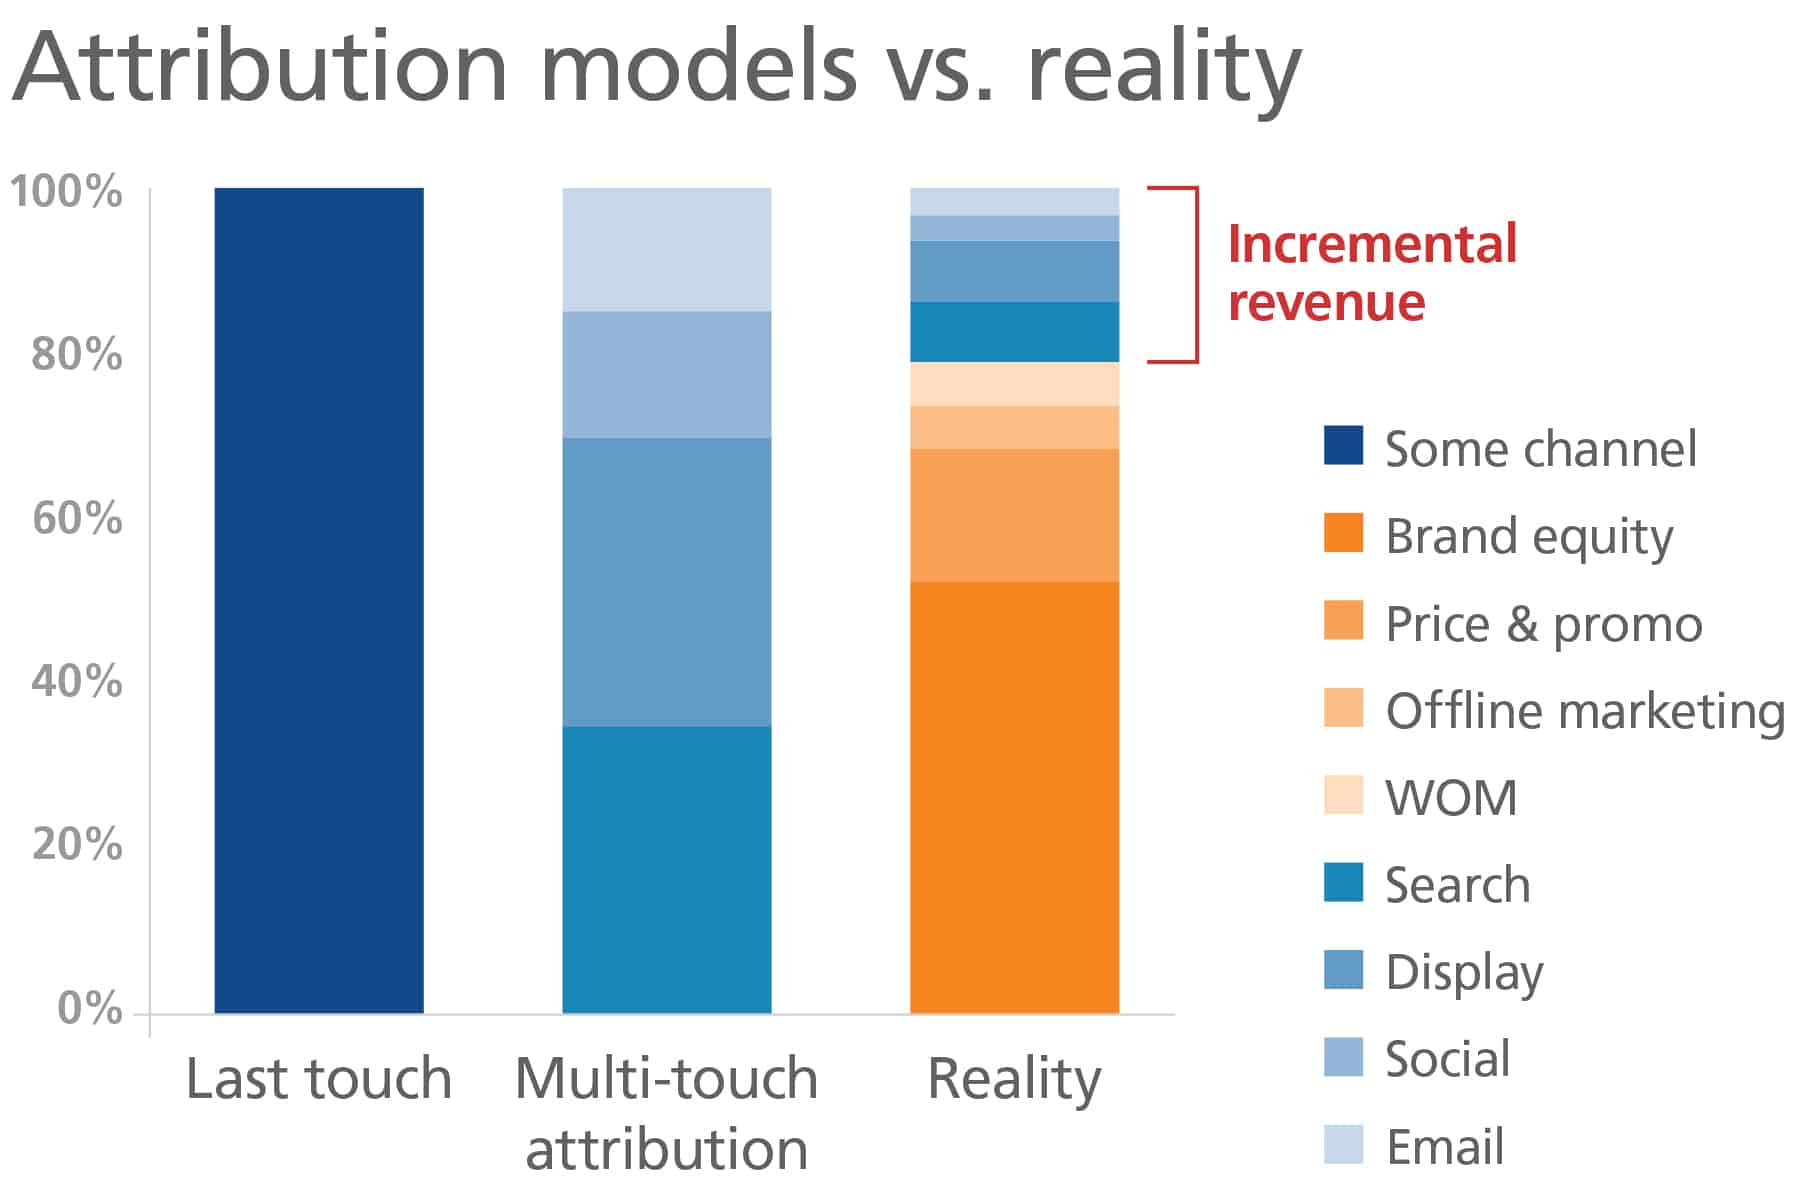 Determining revenue: Attribution models versus reality